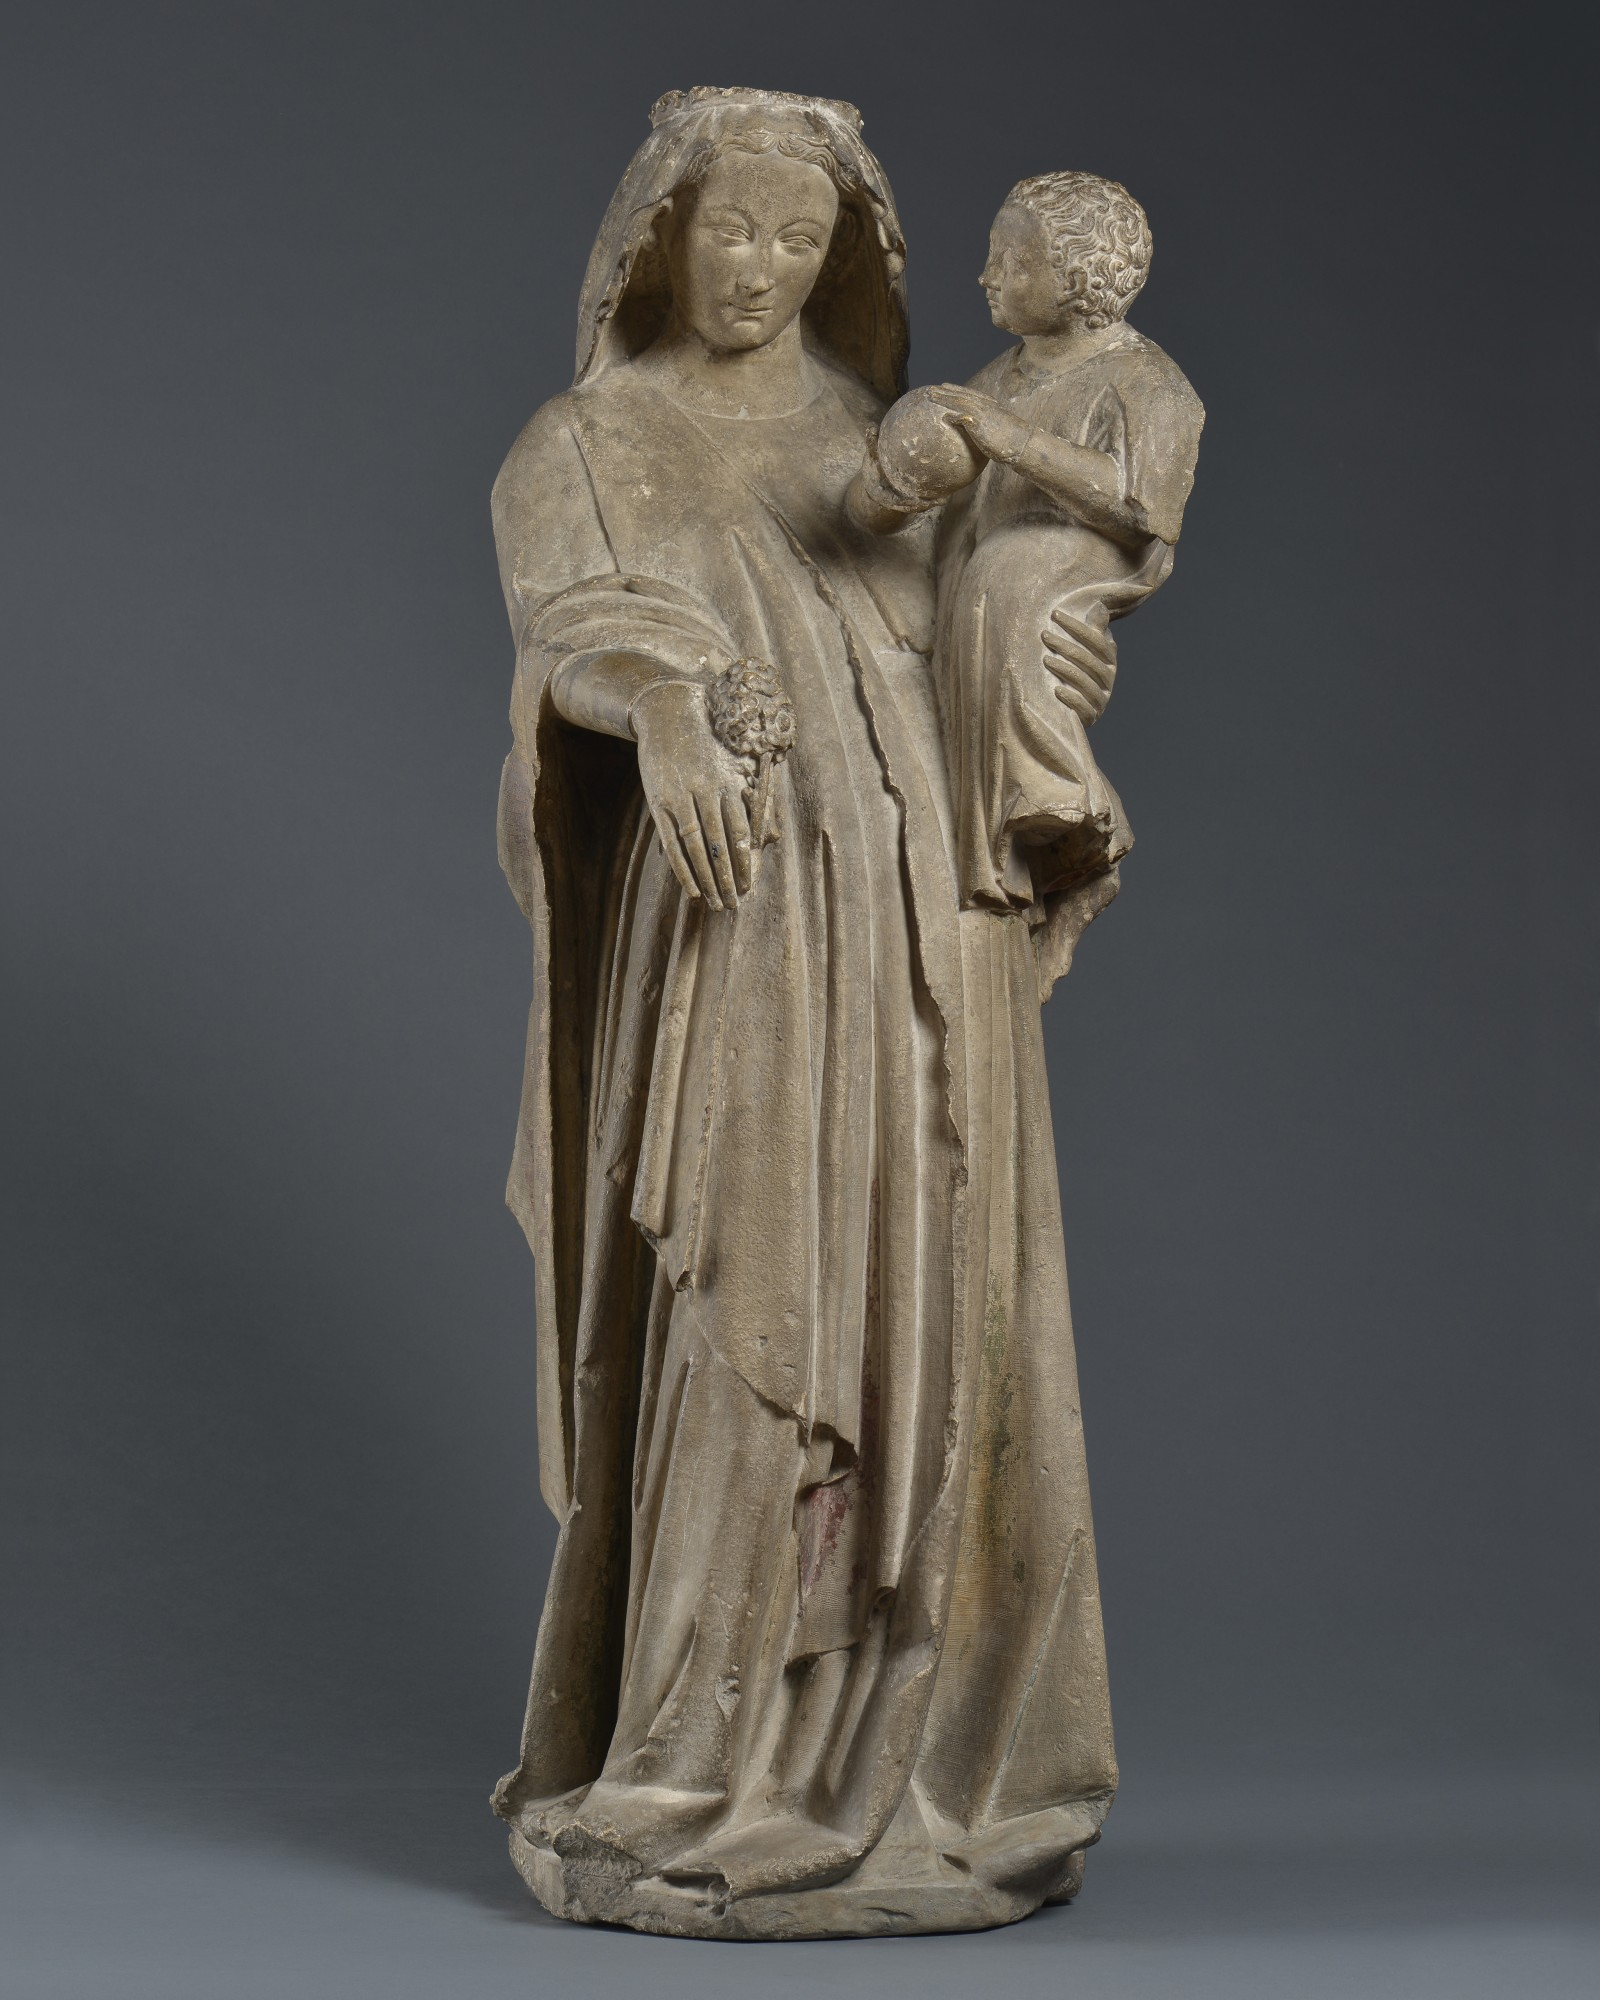 Virgin and Child, France, Mussy sur Seine (Aube), c. 1300 – 1325